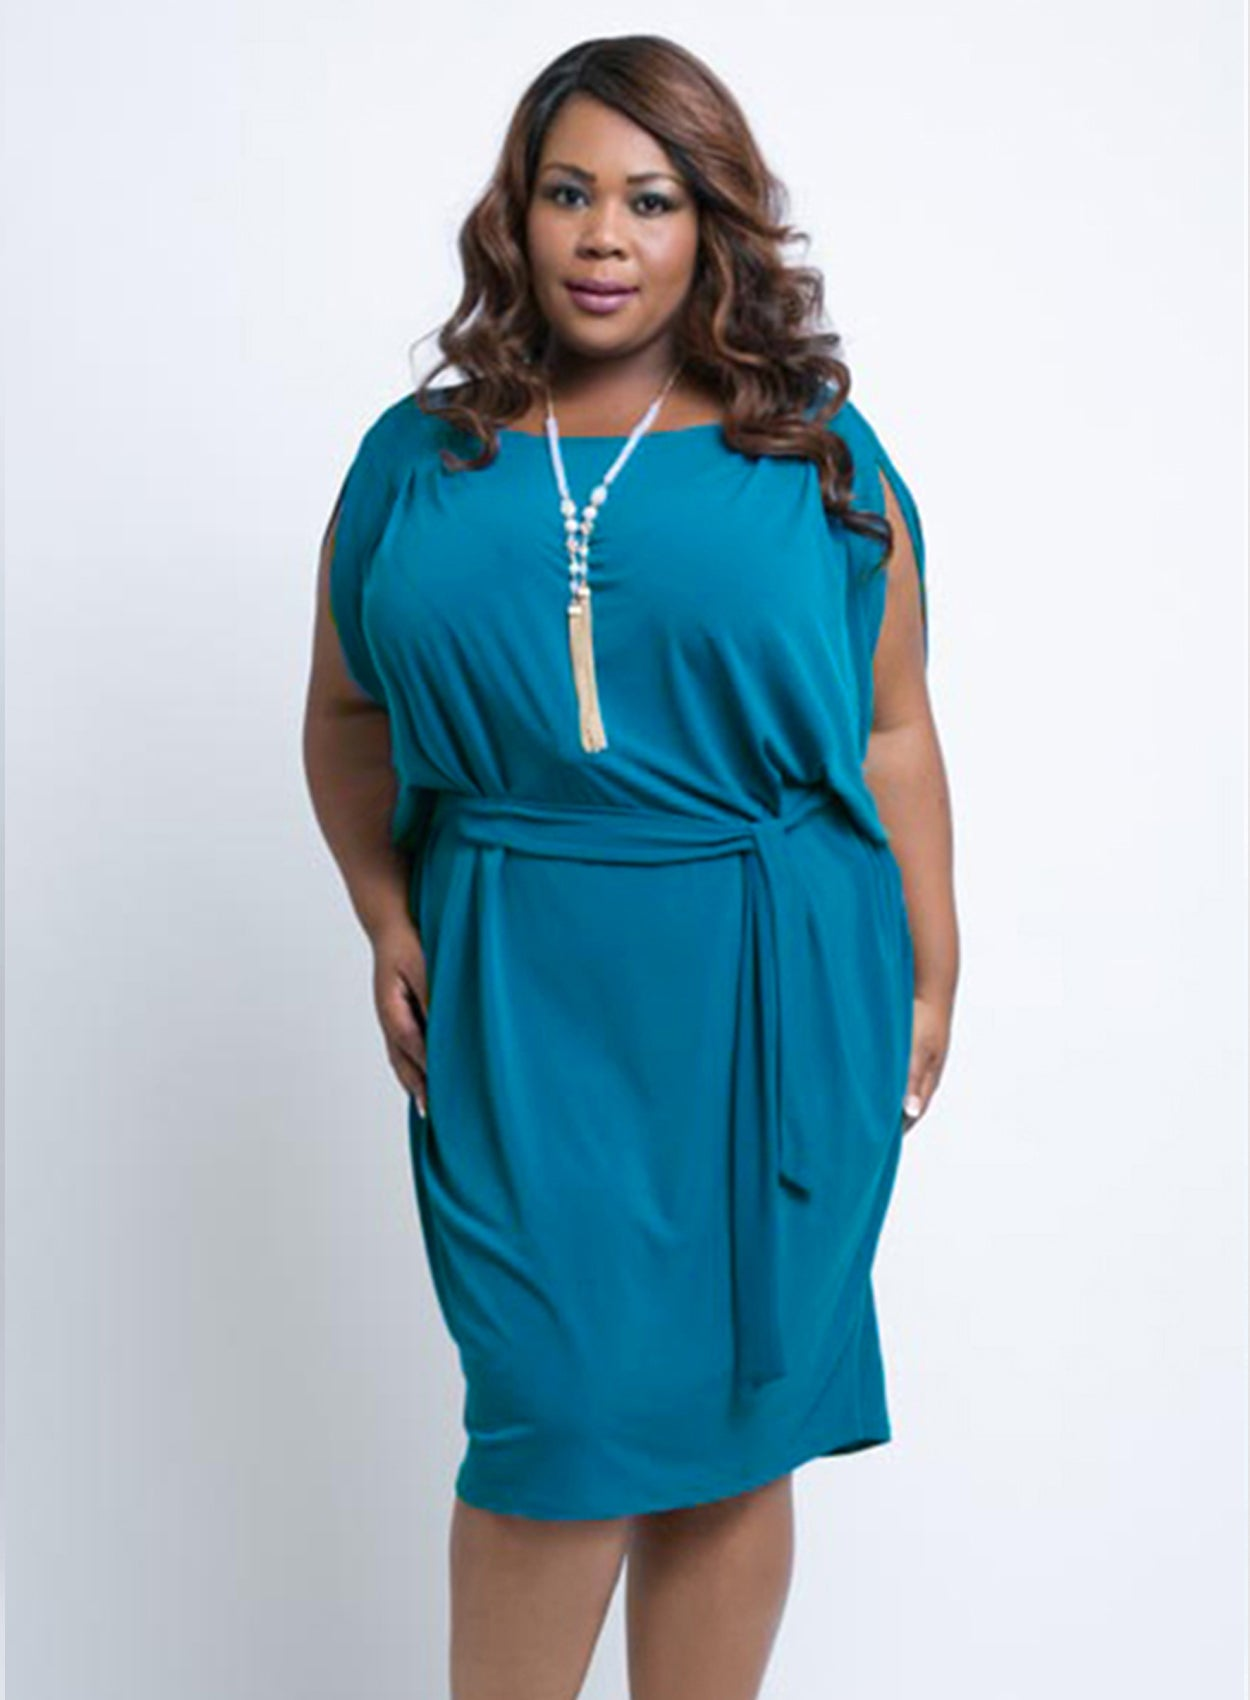 RELAXED FIT CURVY BLUE SLEEVELESS PLUS SIZE DRESS WITH TIE BELT